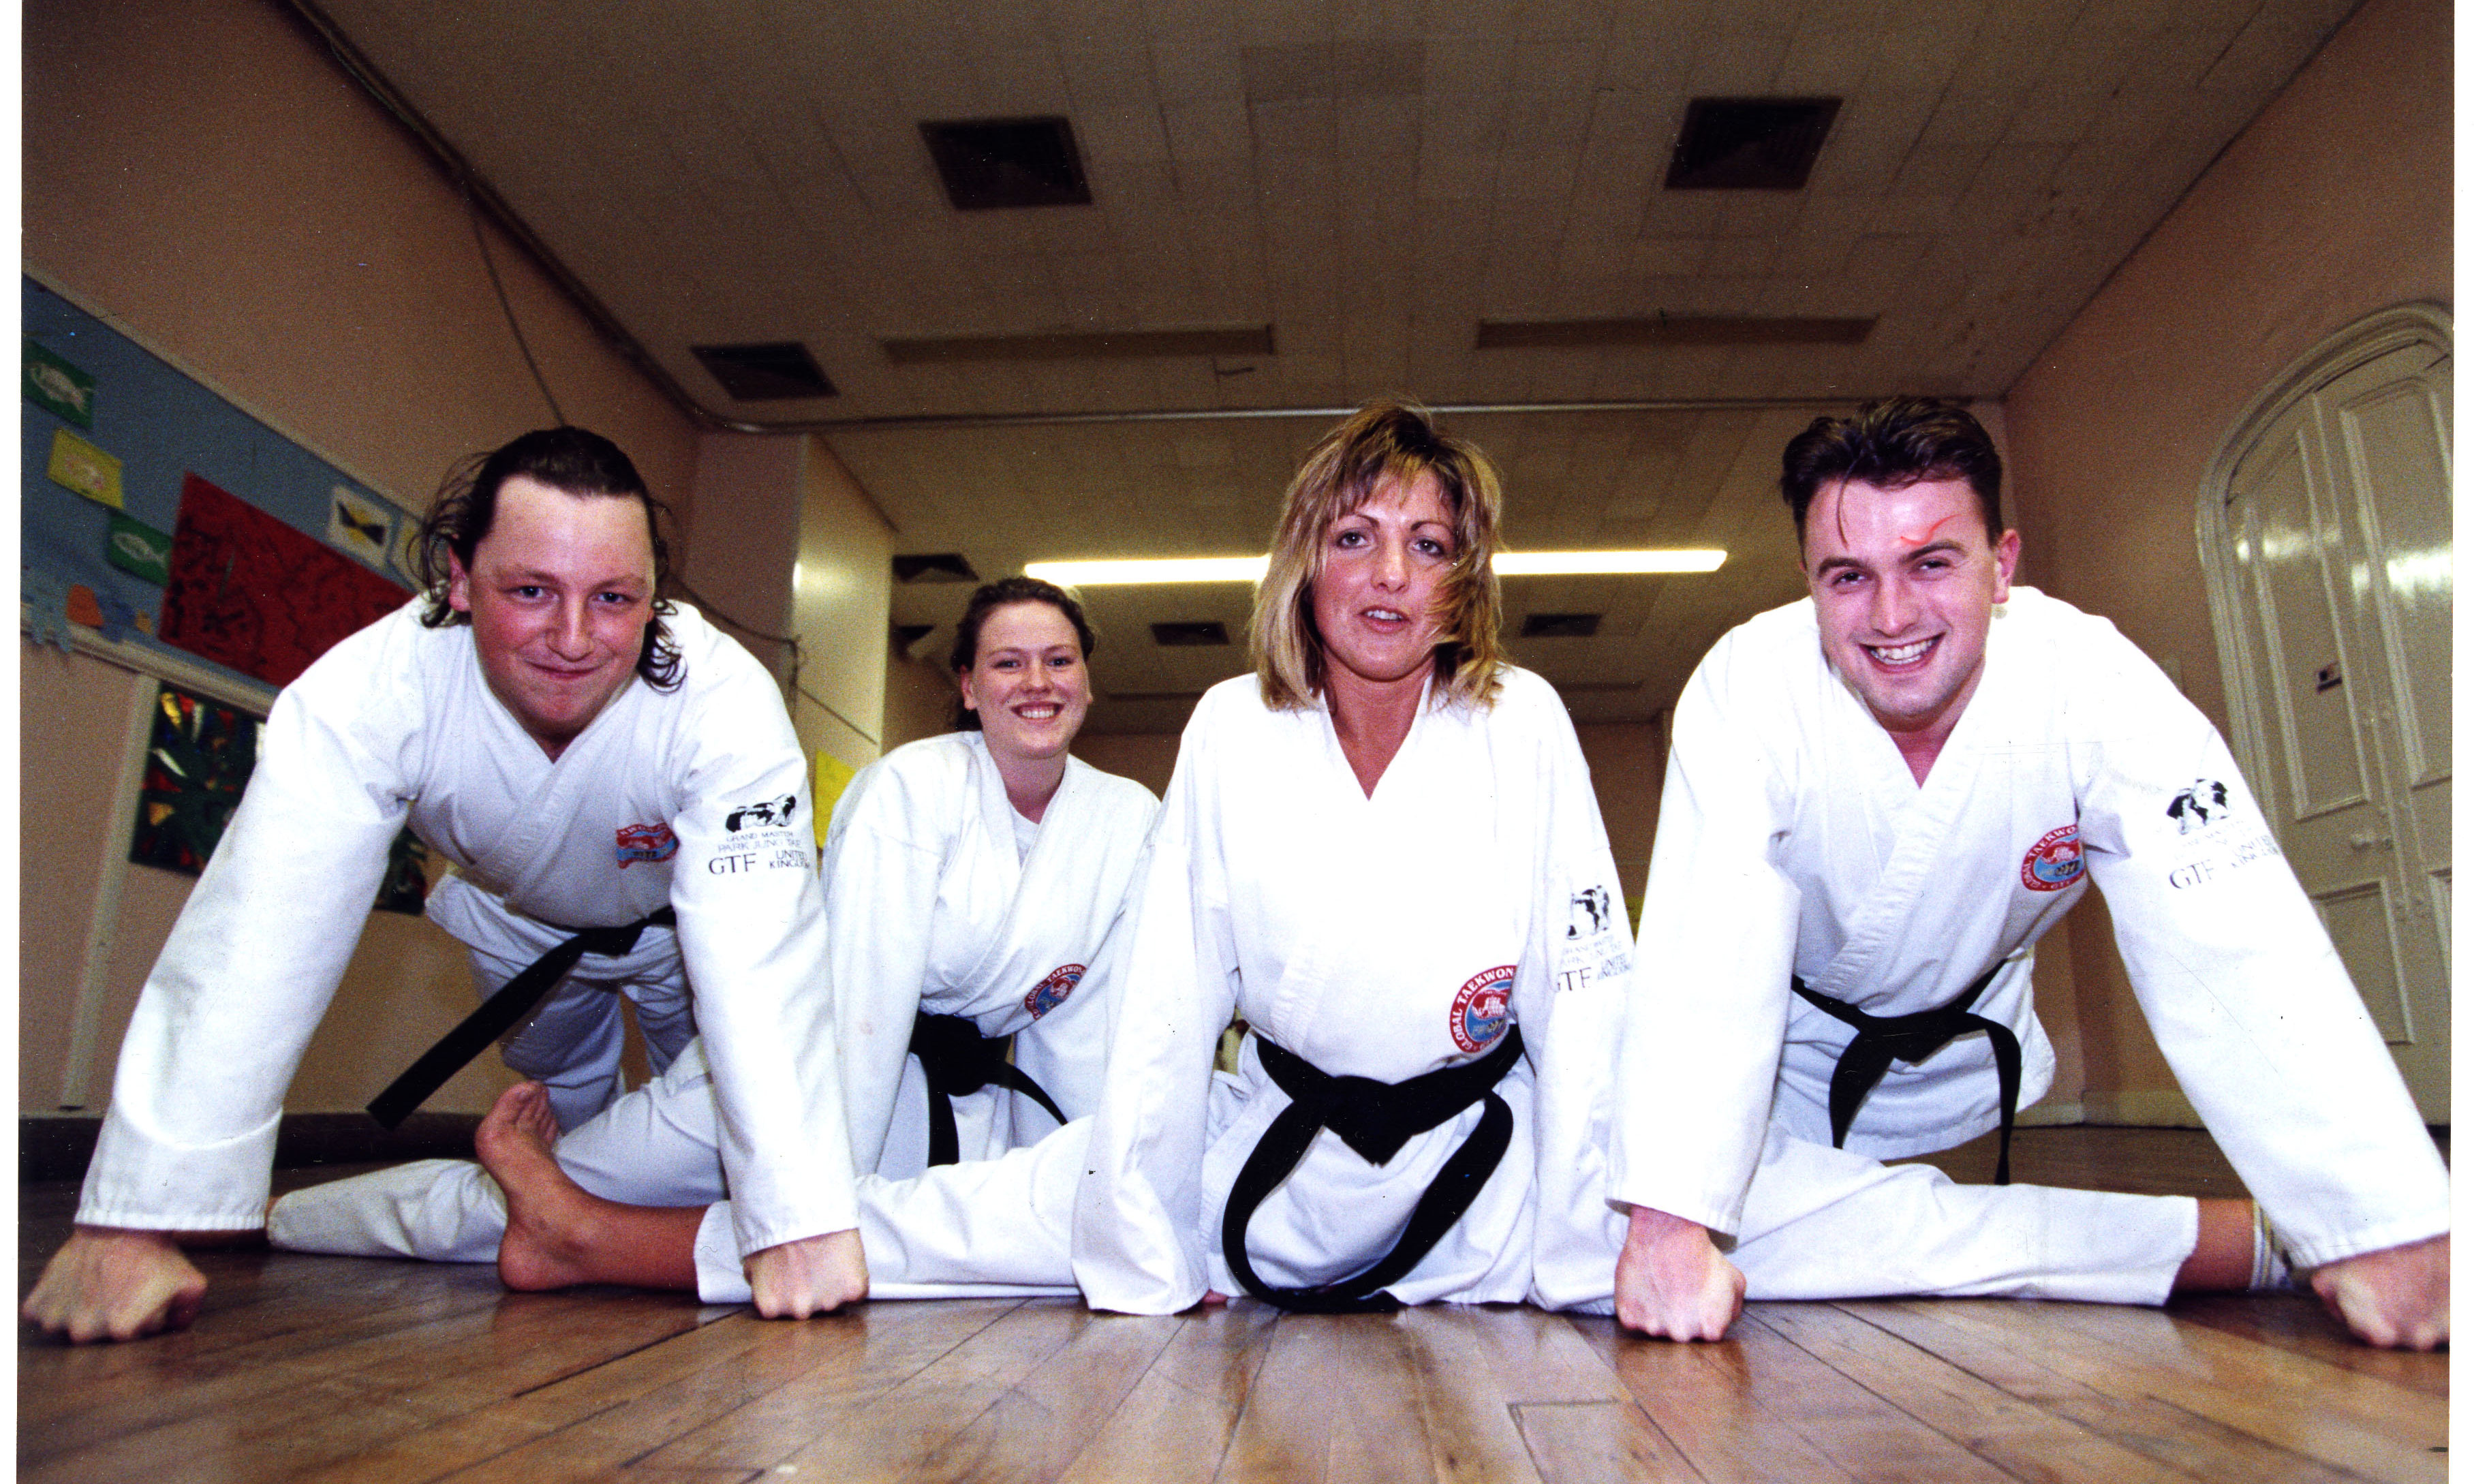 Nathan Ridout, Caroline Ross, Janice Urquhart and Pascal Holt of the  Tayside Tae Kwan Do group in 1994.